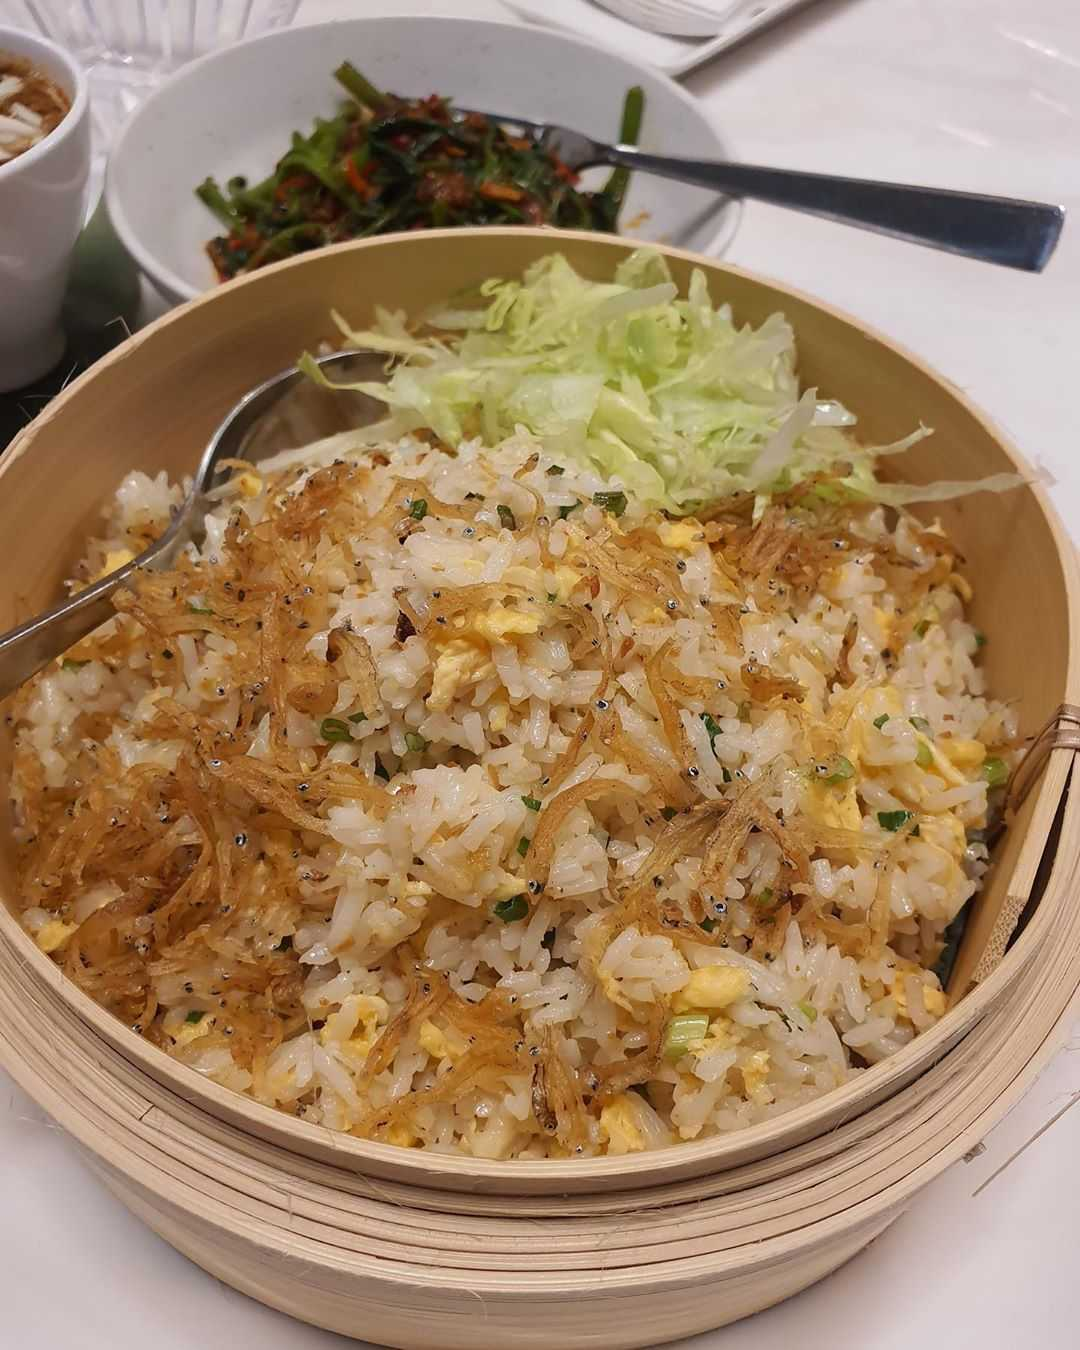 Rice with crab at Jumbo Seafood in The Veranda of ICONSIAM, Bangkok